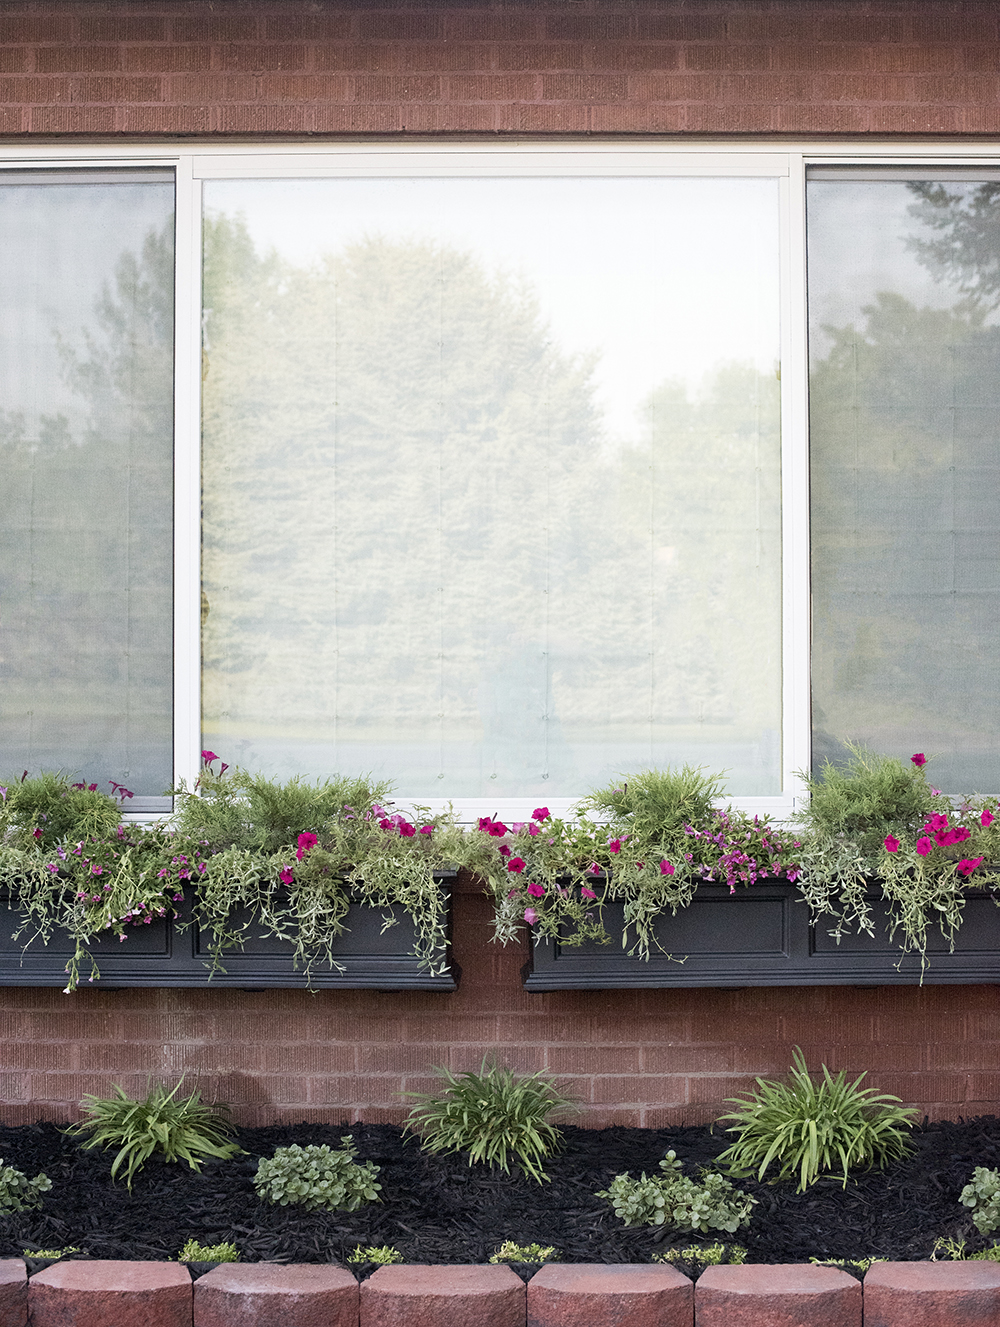 How to Install Window Flower Boxes - roomfortuesday.com